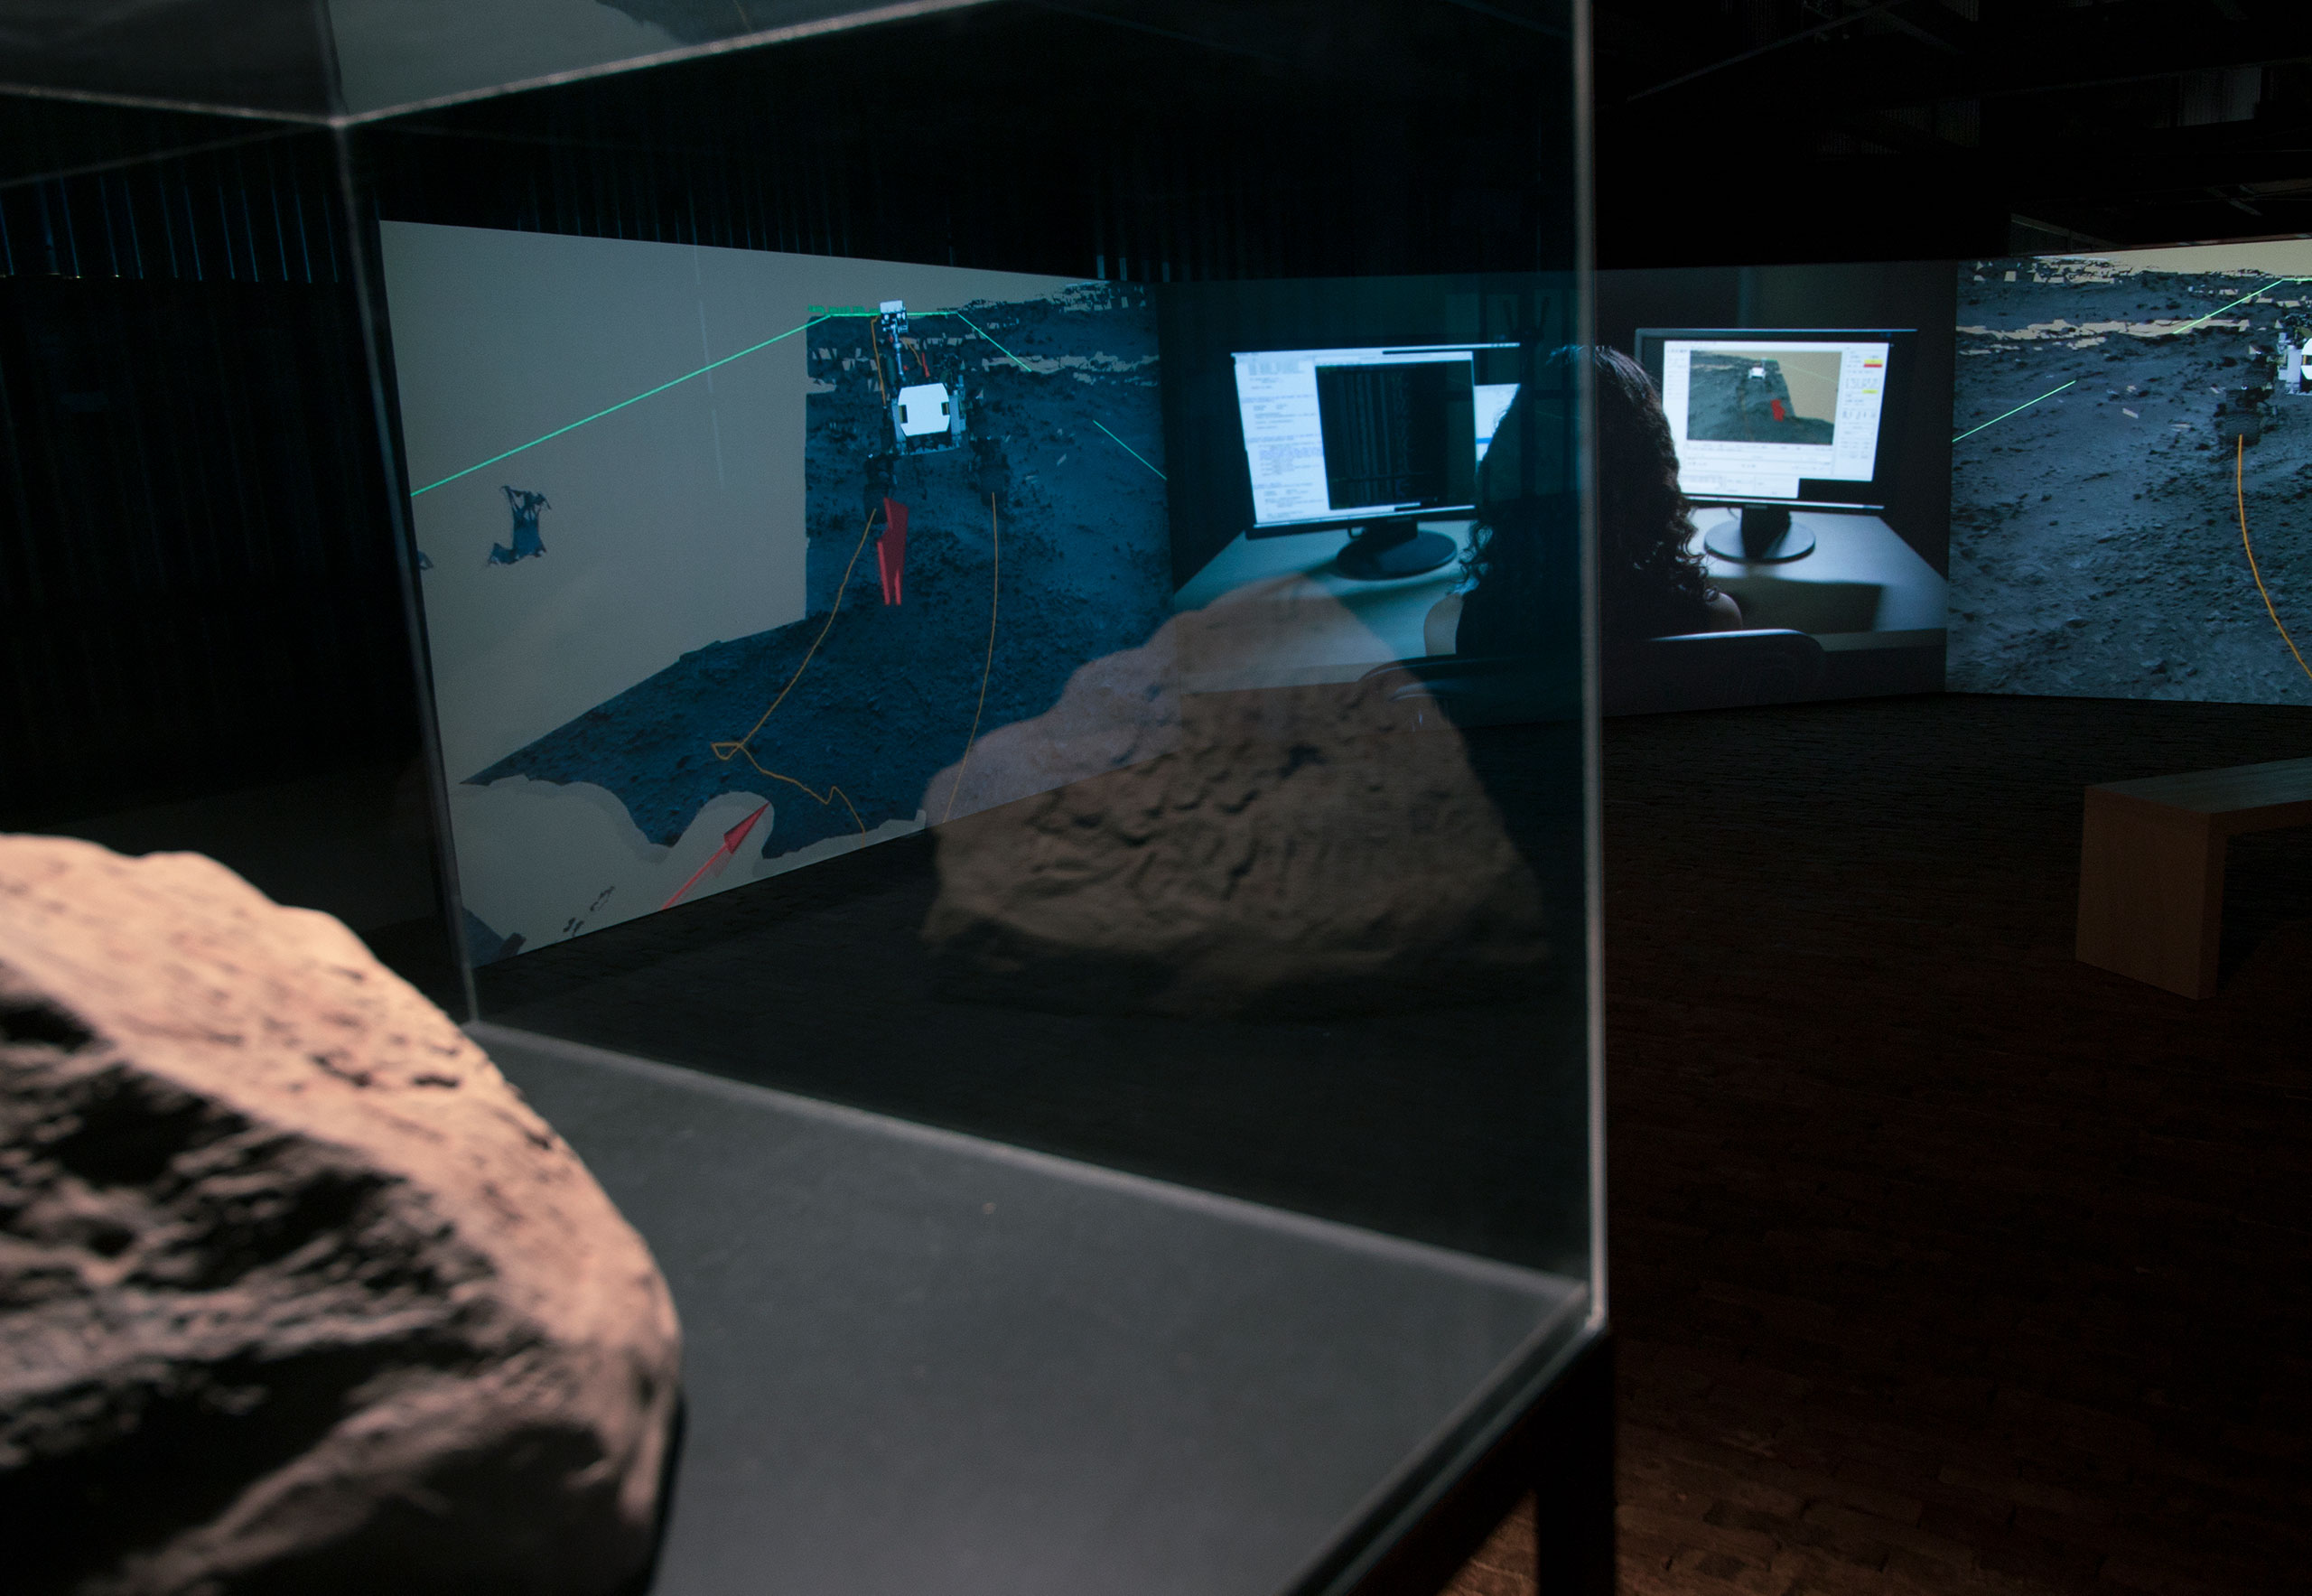 The Photons of Mars installation acquired for the Kiasma collection